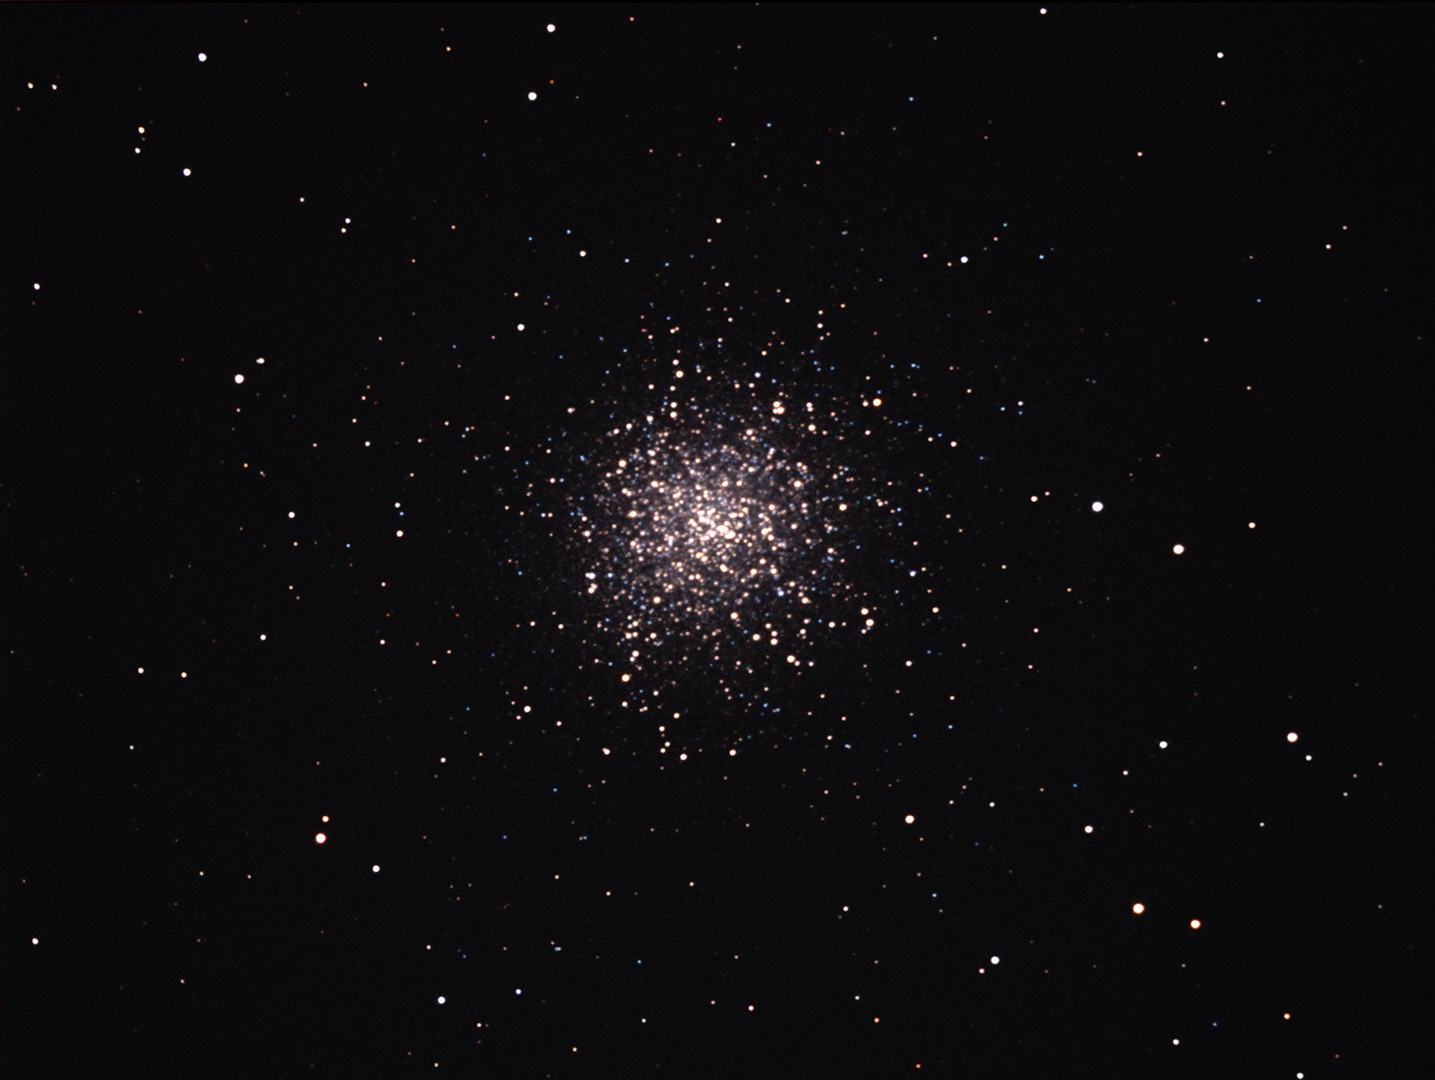 starcluster m13 - photo #13